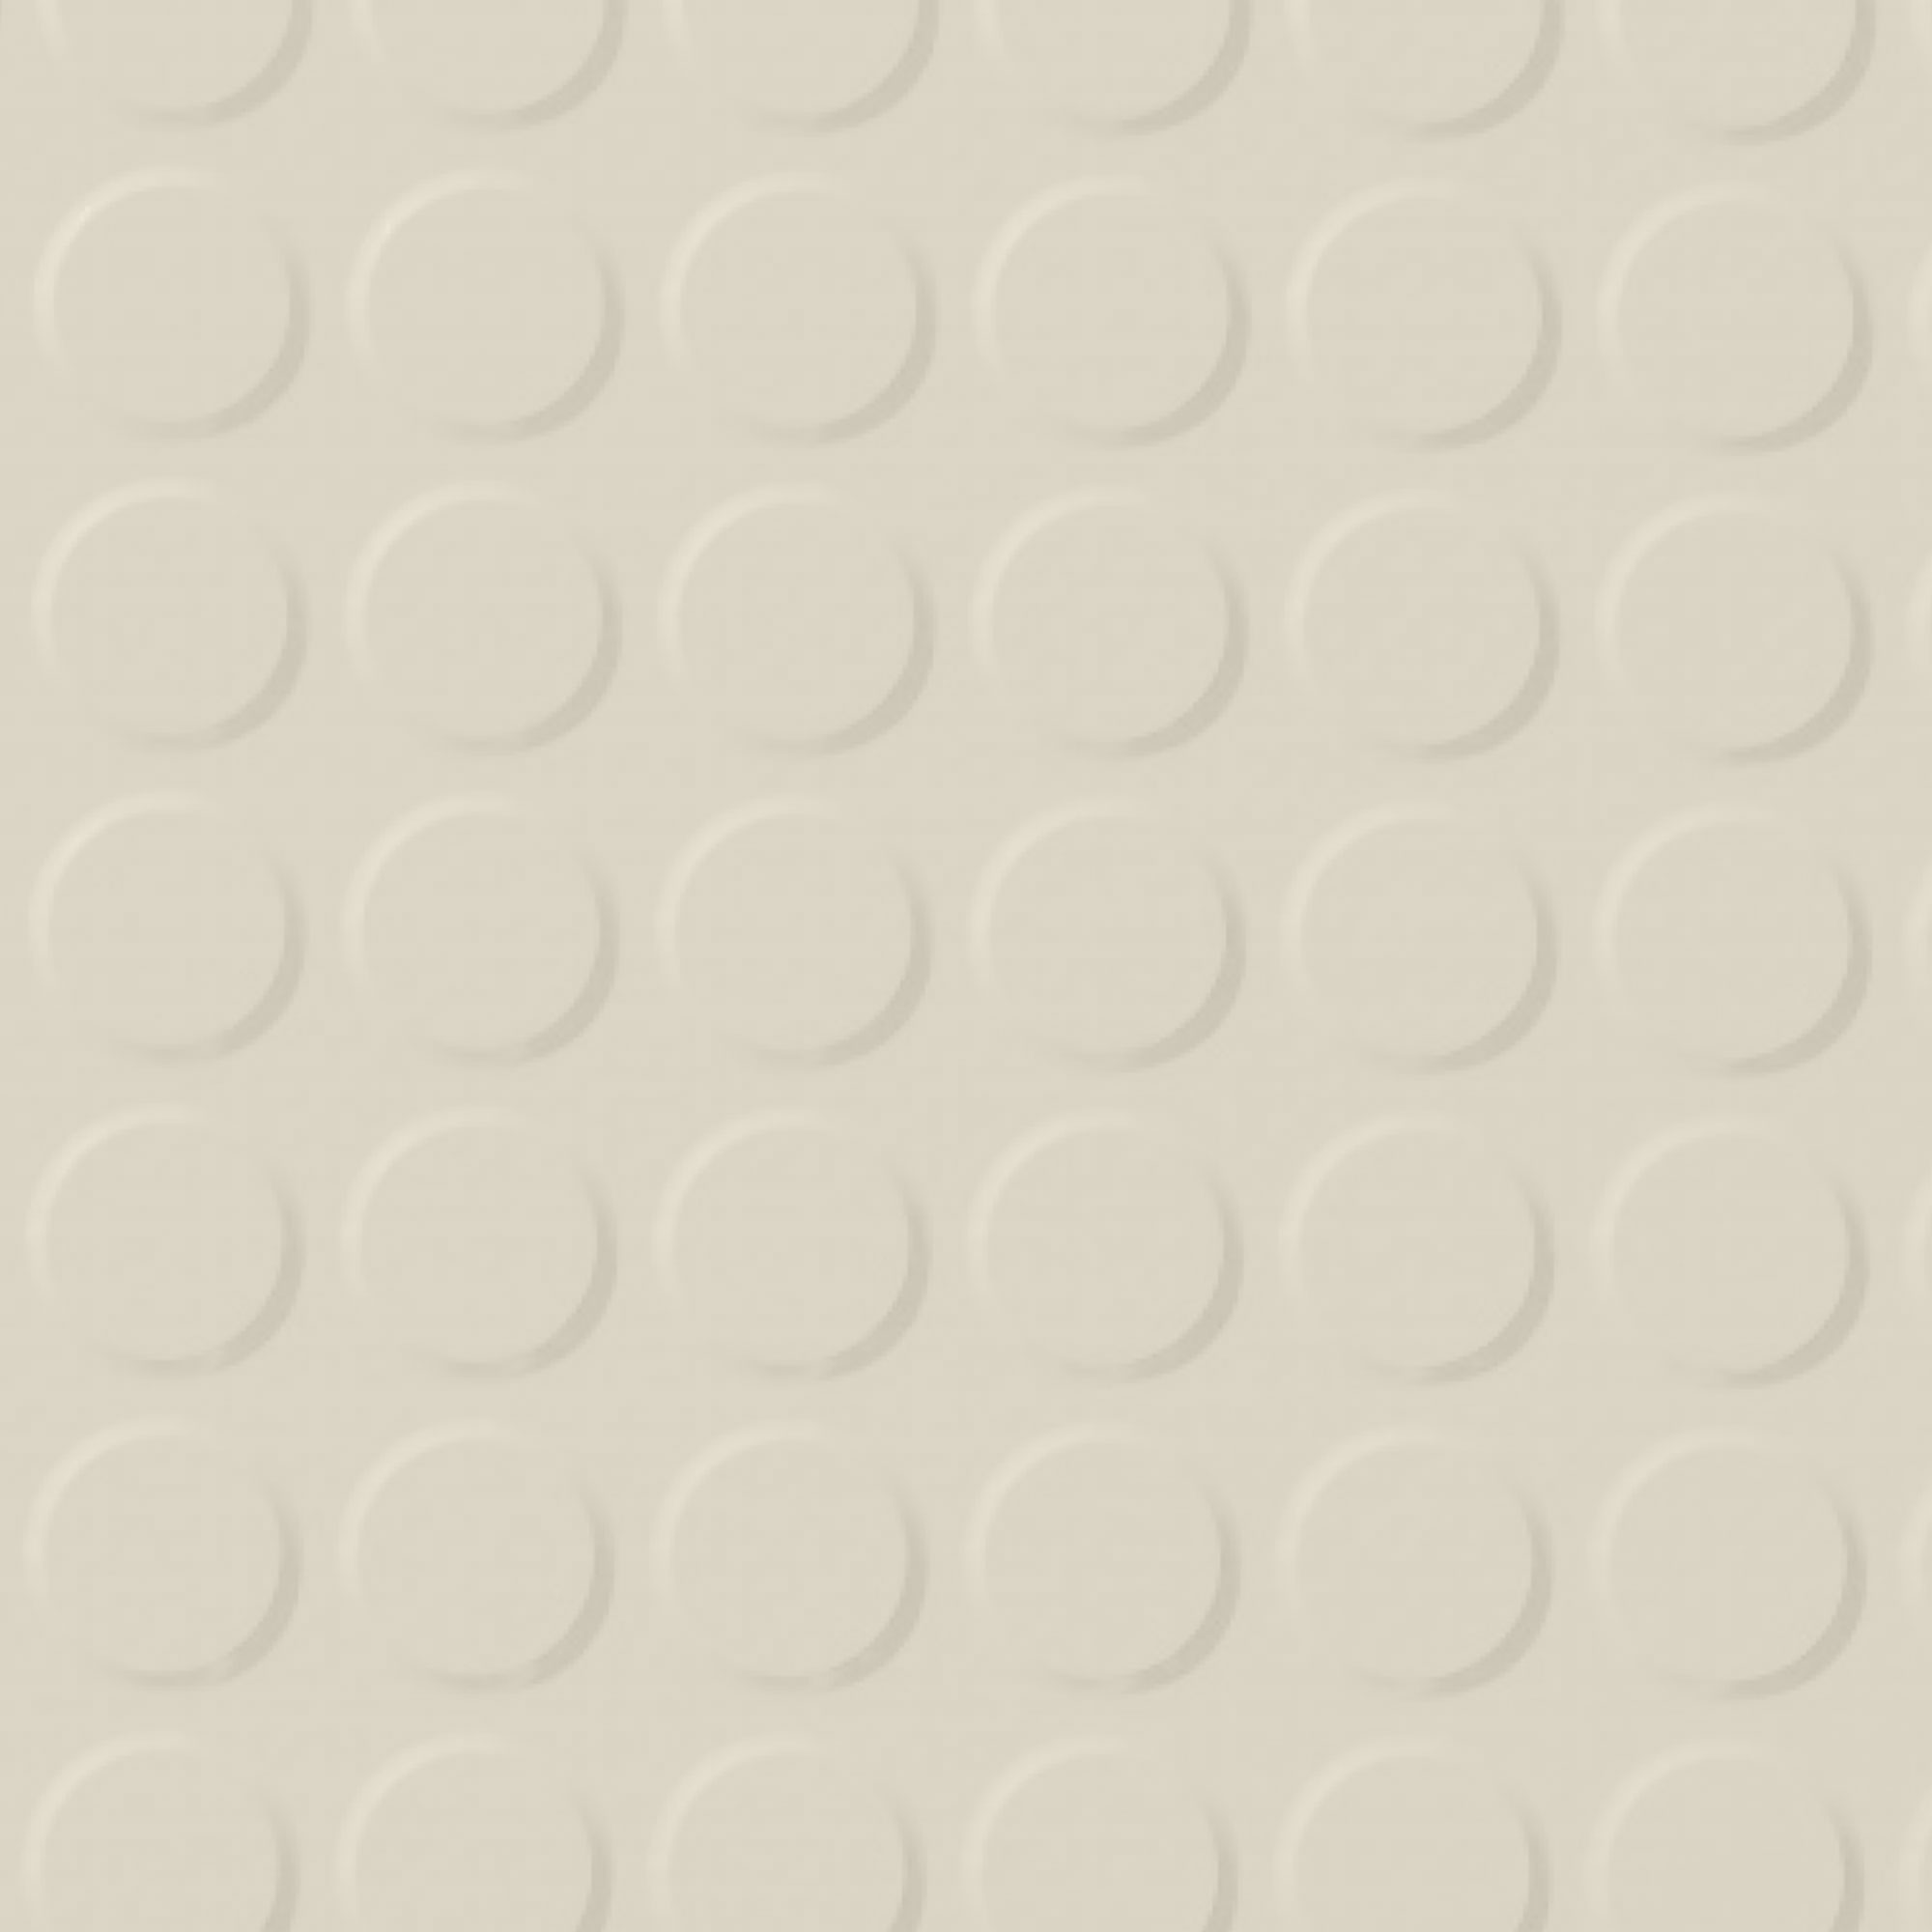 Roppe Rubber Tile 900 - Vantage Raised Circular Design (996) White 170